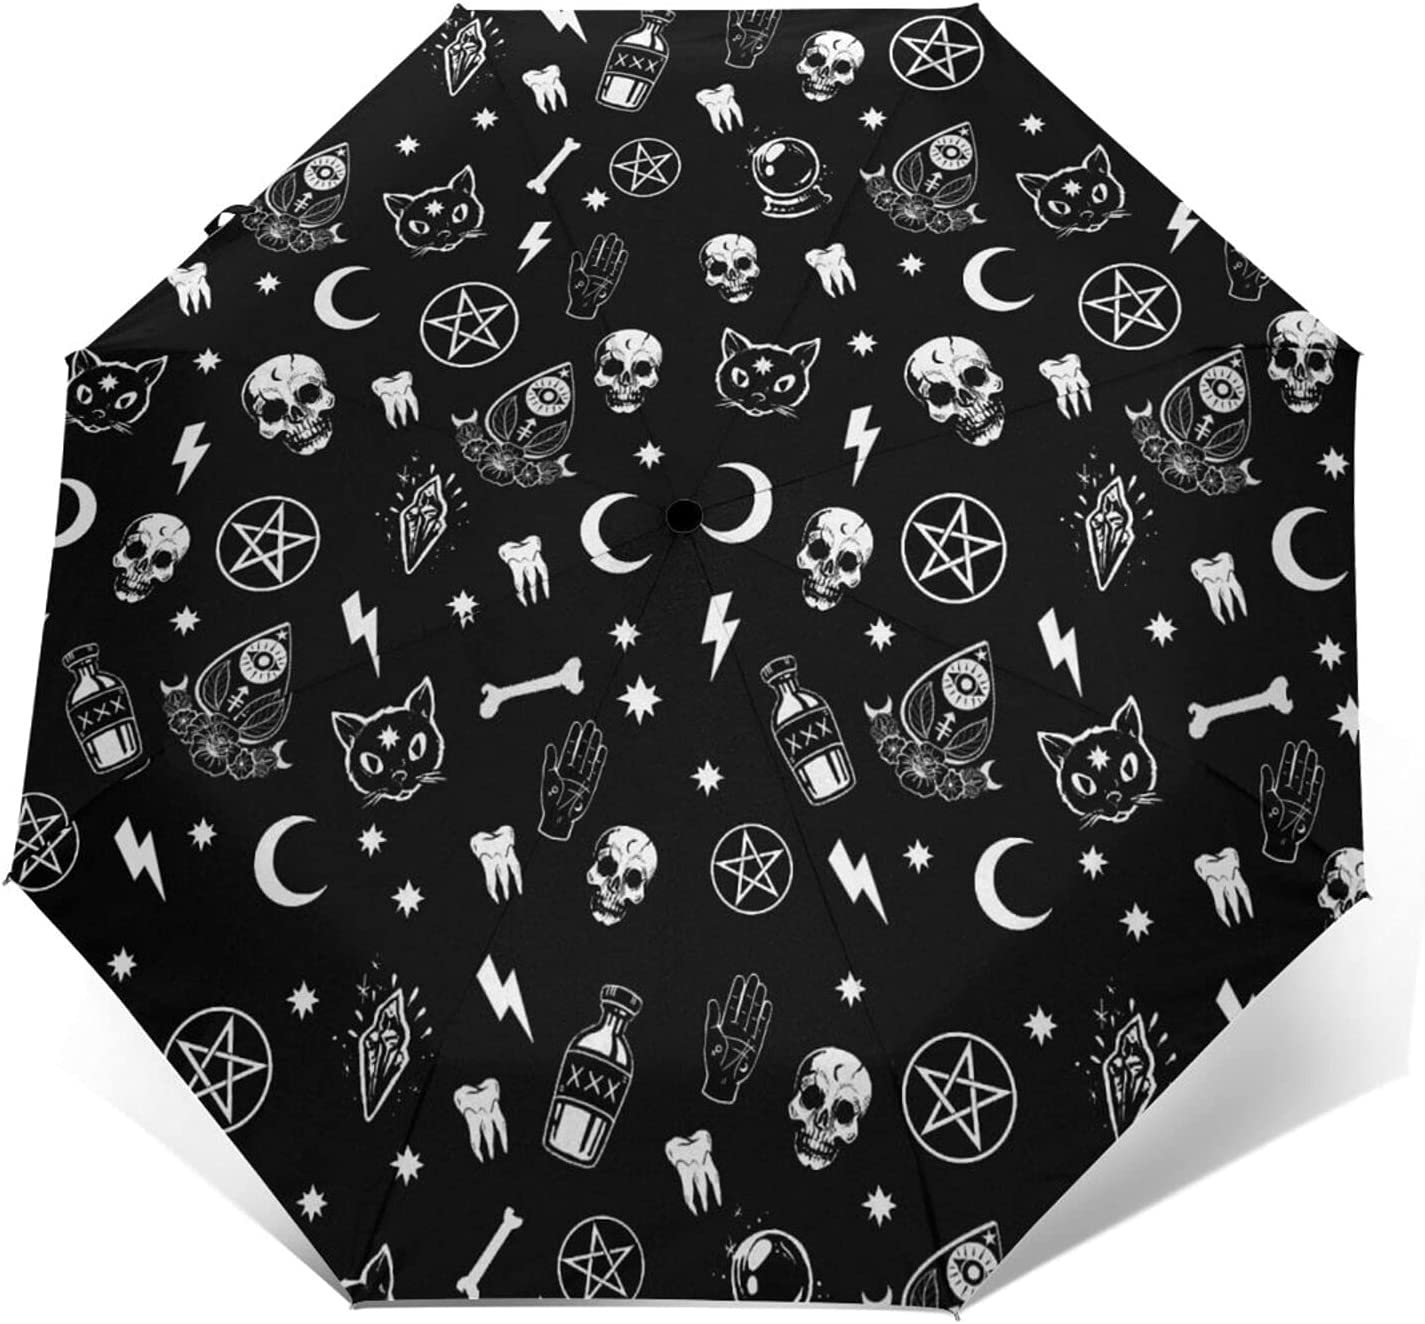 SWEET TANG Gothic Trippy Moon Skull Trave Over item handling ☆ Max 45% OFF Cat Pattern Black Bone